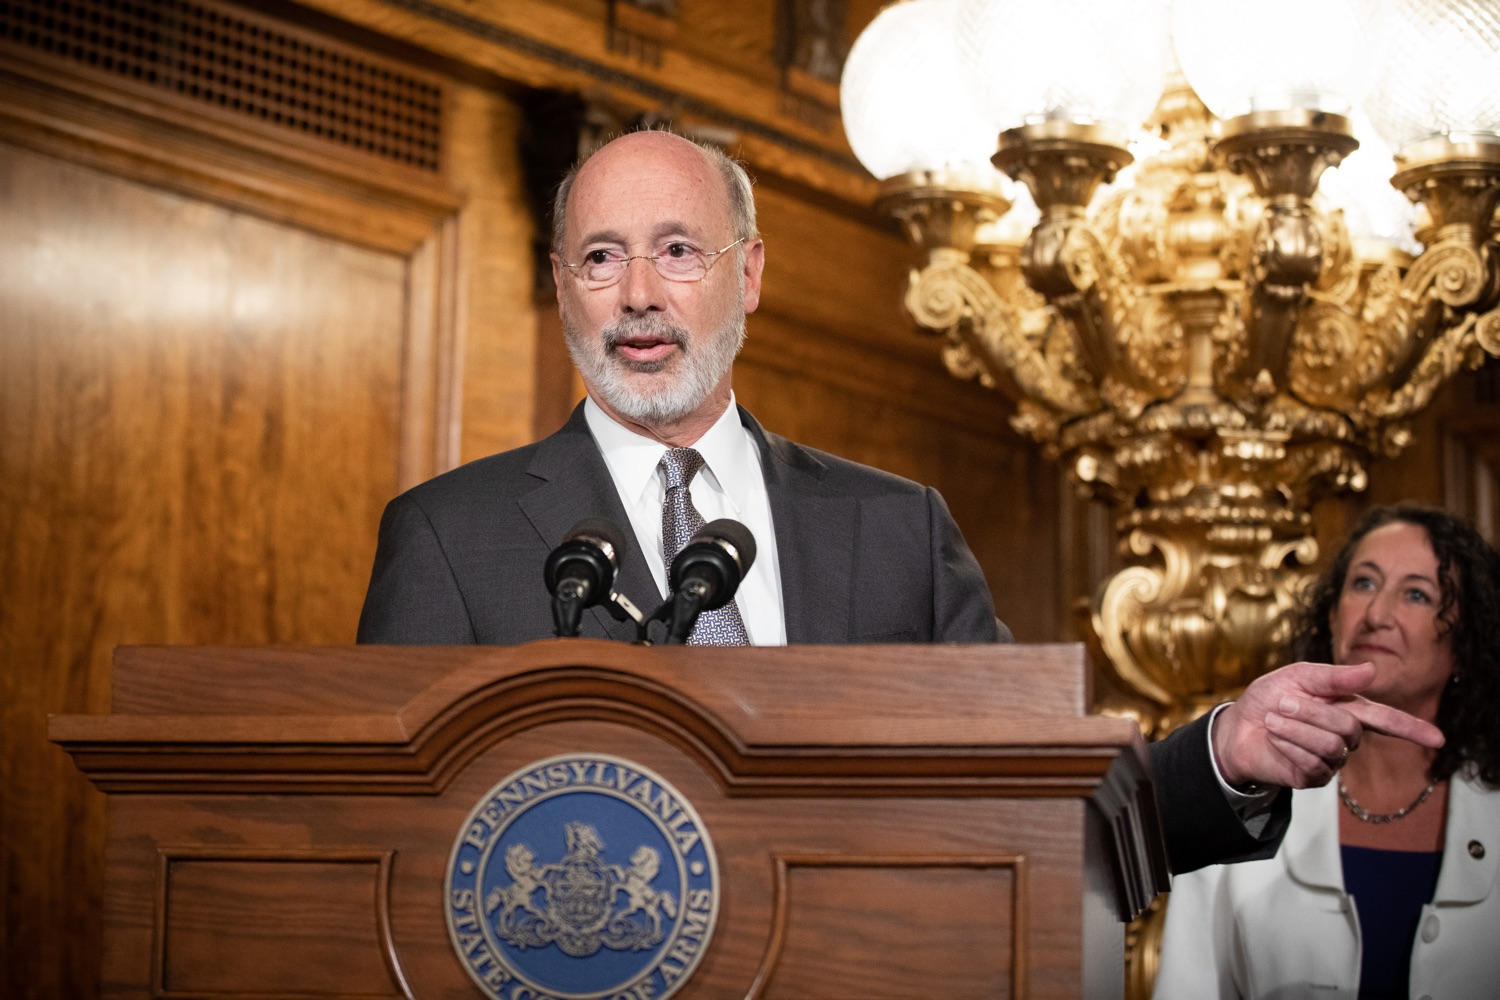 "<a href=""http://filesource.abacast.com/commonwealthofpa/photo/17554_gov_voter_reform_bill_dz_014.jpg"" target=""_blank"">⇣ Download Photo<br></a>Harrisburg, PA  Governor Tom Wolf speaks at the Election Reform Bill signing. Governor Wolf made voting more convenient and secure by signing Act 77 of 2019, the most significant improvement to Pennsylvanias elections in more than 80 years. The bipartisan compromise legislation takes effect for the April 2020 primary election and makes Pennsylvania a national leader with voter-friendly election reforms."